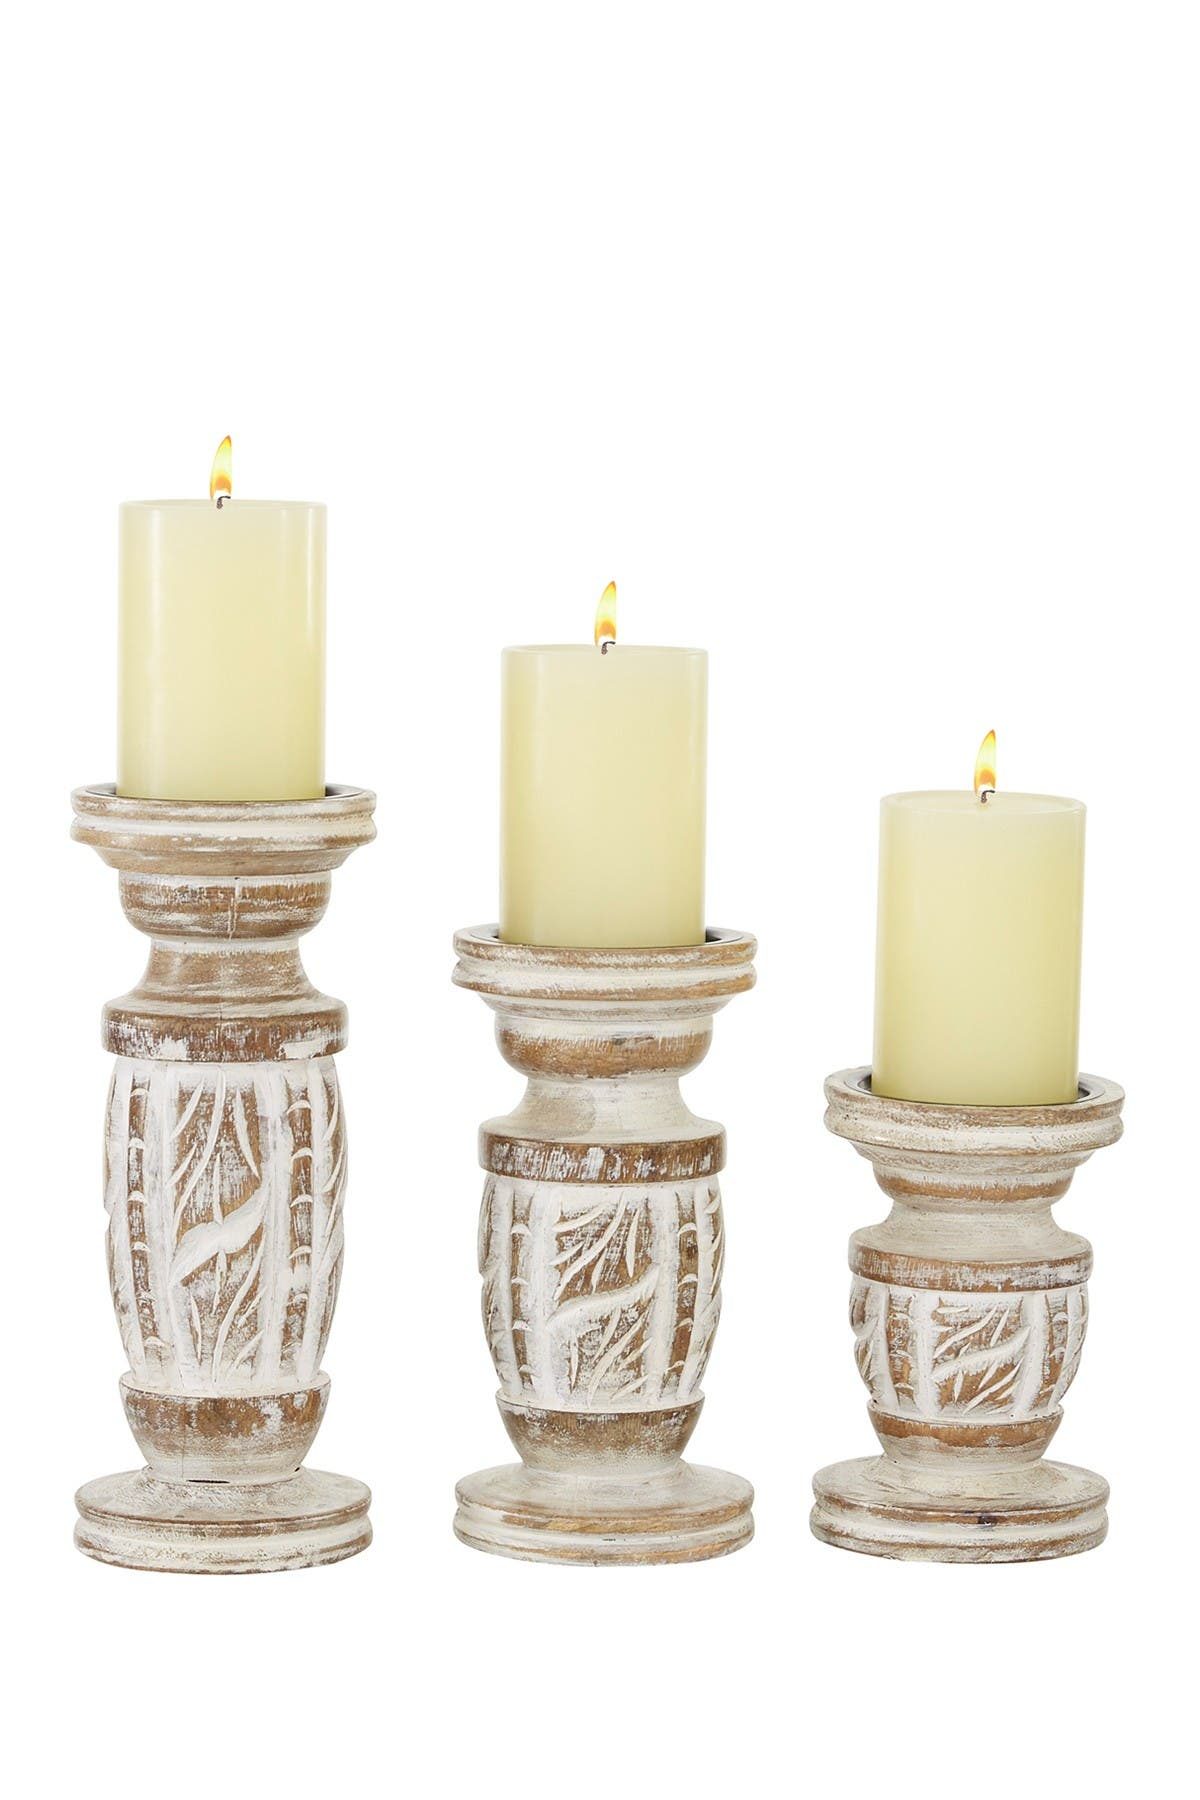 Image of Willow Row White Mango Wood Country Cottage Candle Holder - Set of 3